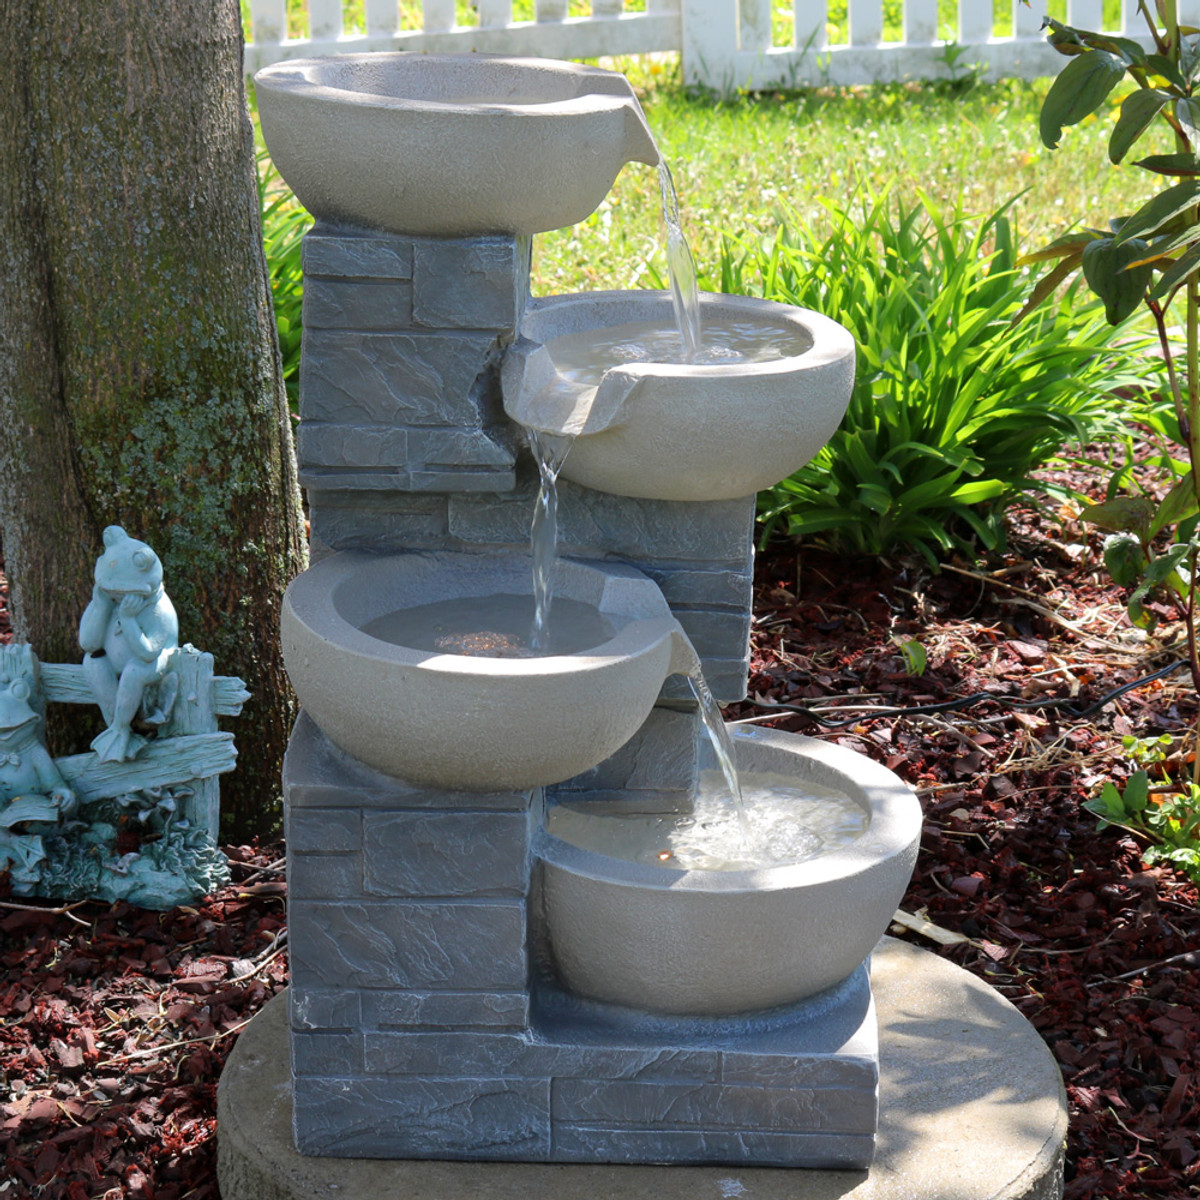 Sunnydaze 4 tier descending stone bowls outdoor water fountain with led lights includes electric submersible pump sunnydaze 4 tier descending stone bowls outdoor water fountain with led lights includes electric submersible pump mozeypictures Gallery